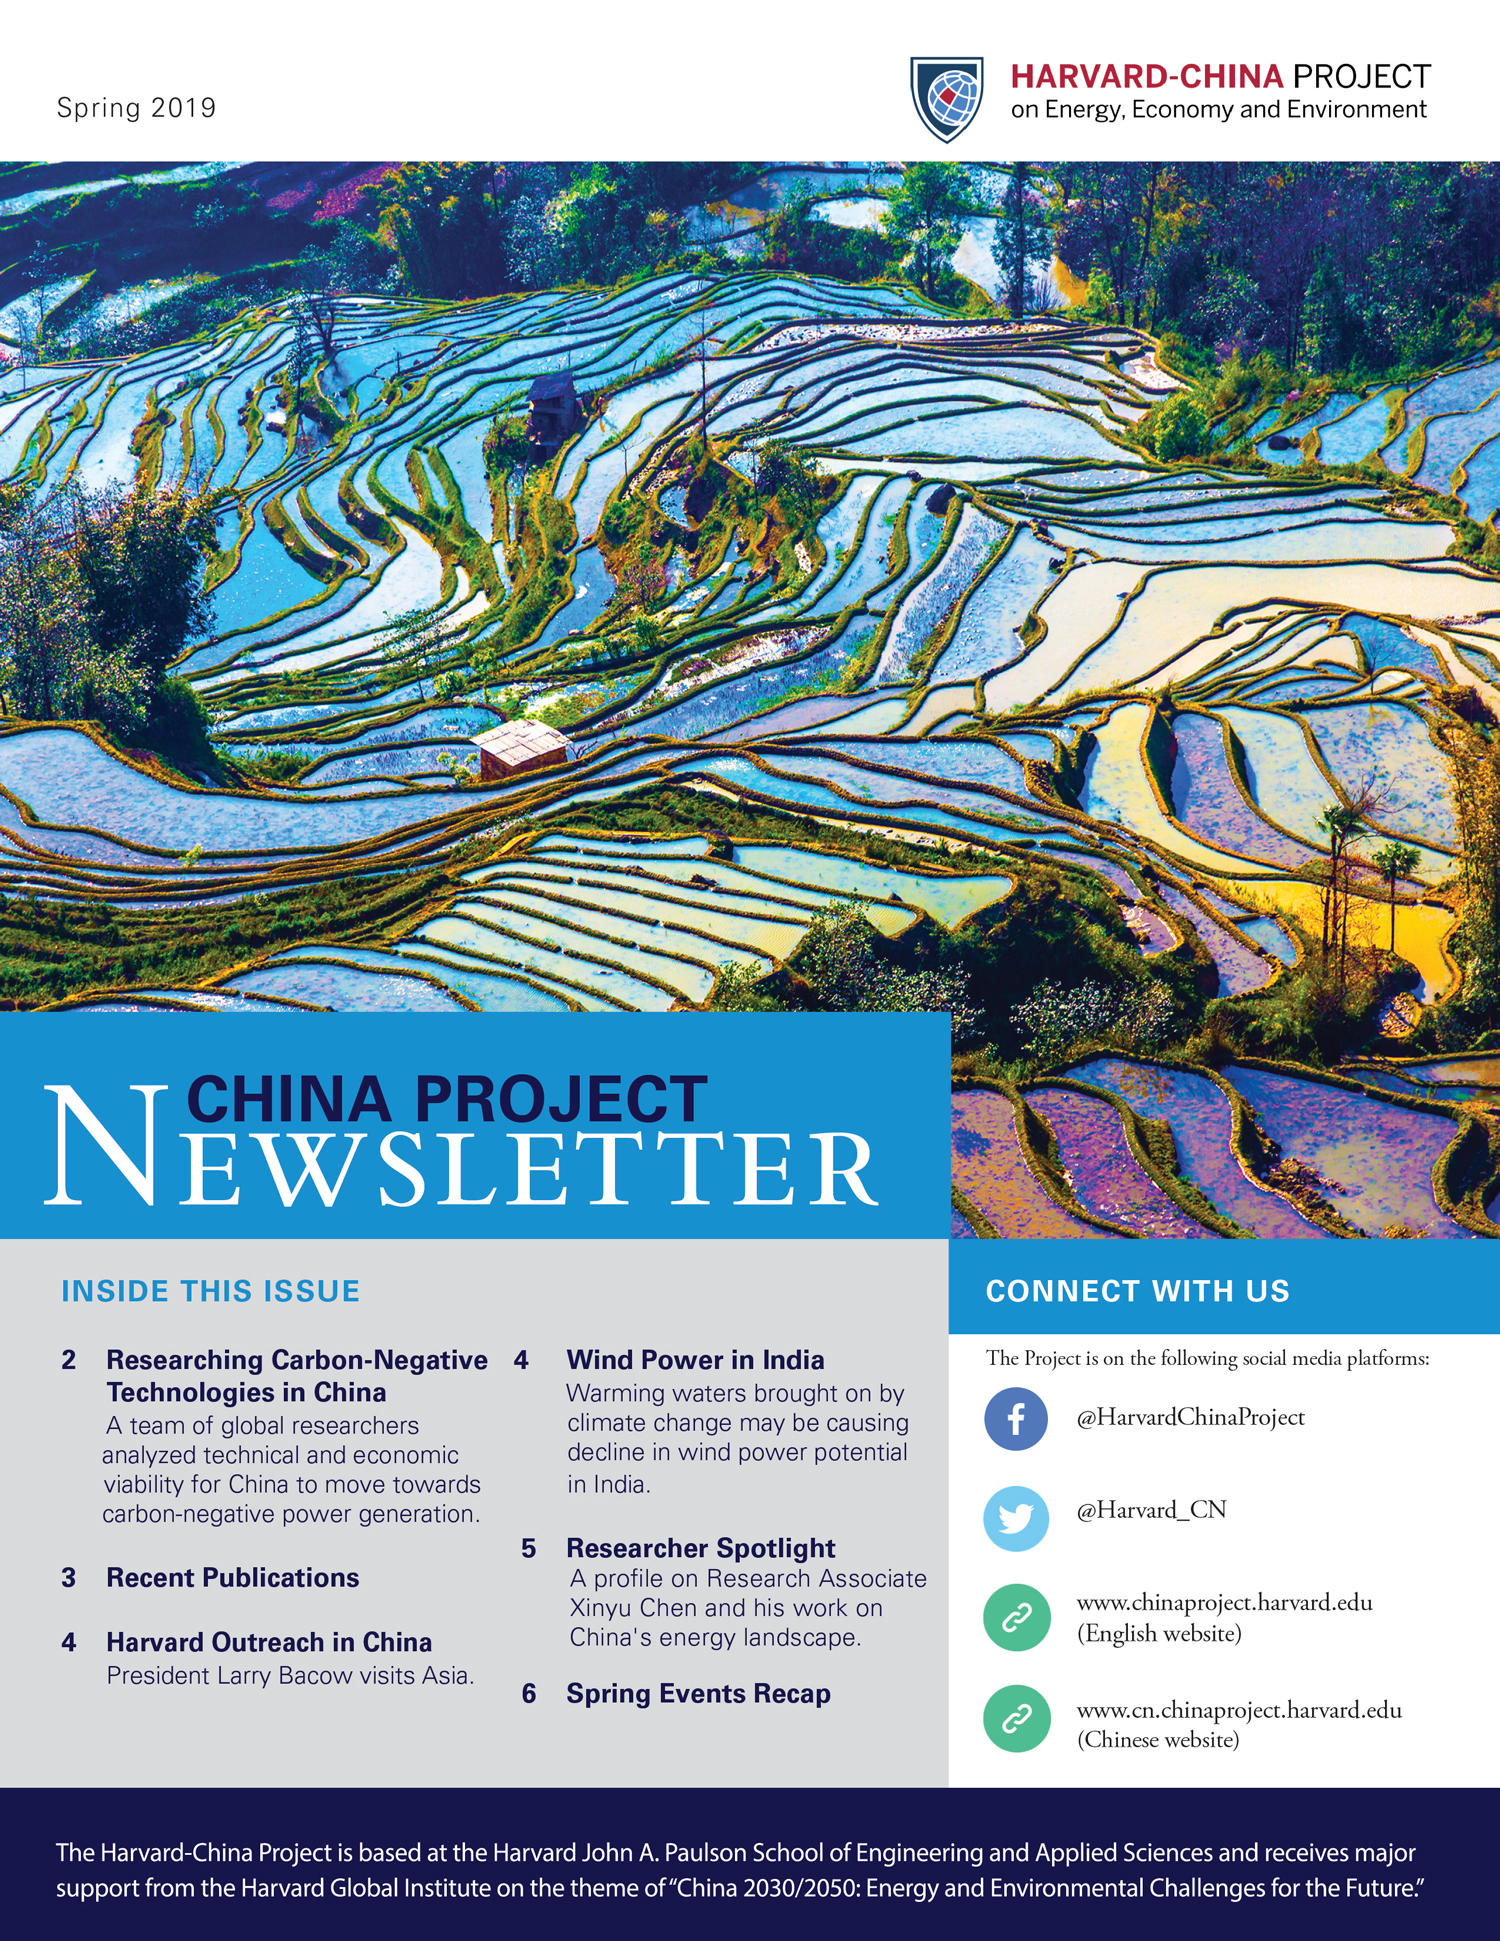 China Project 2019 Newsletter Cover - Rice Fields